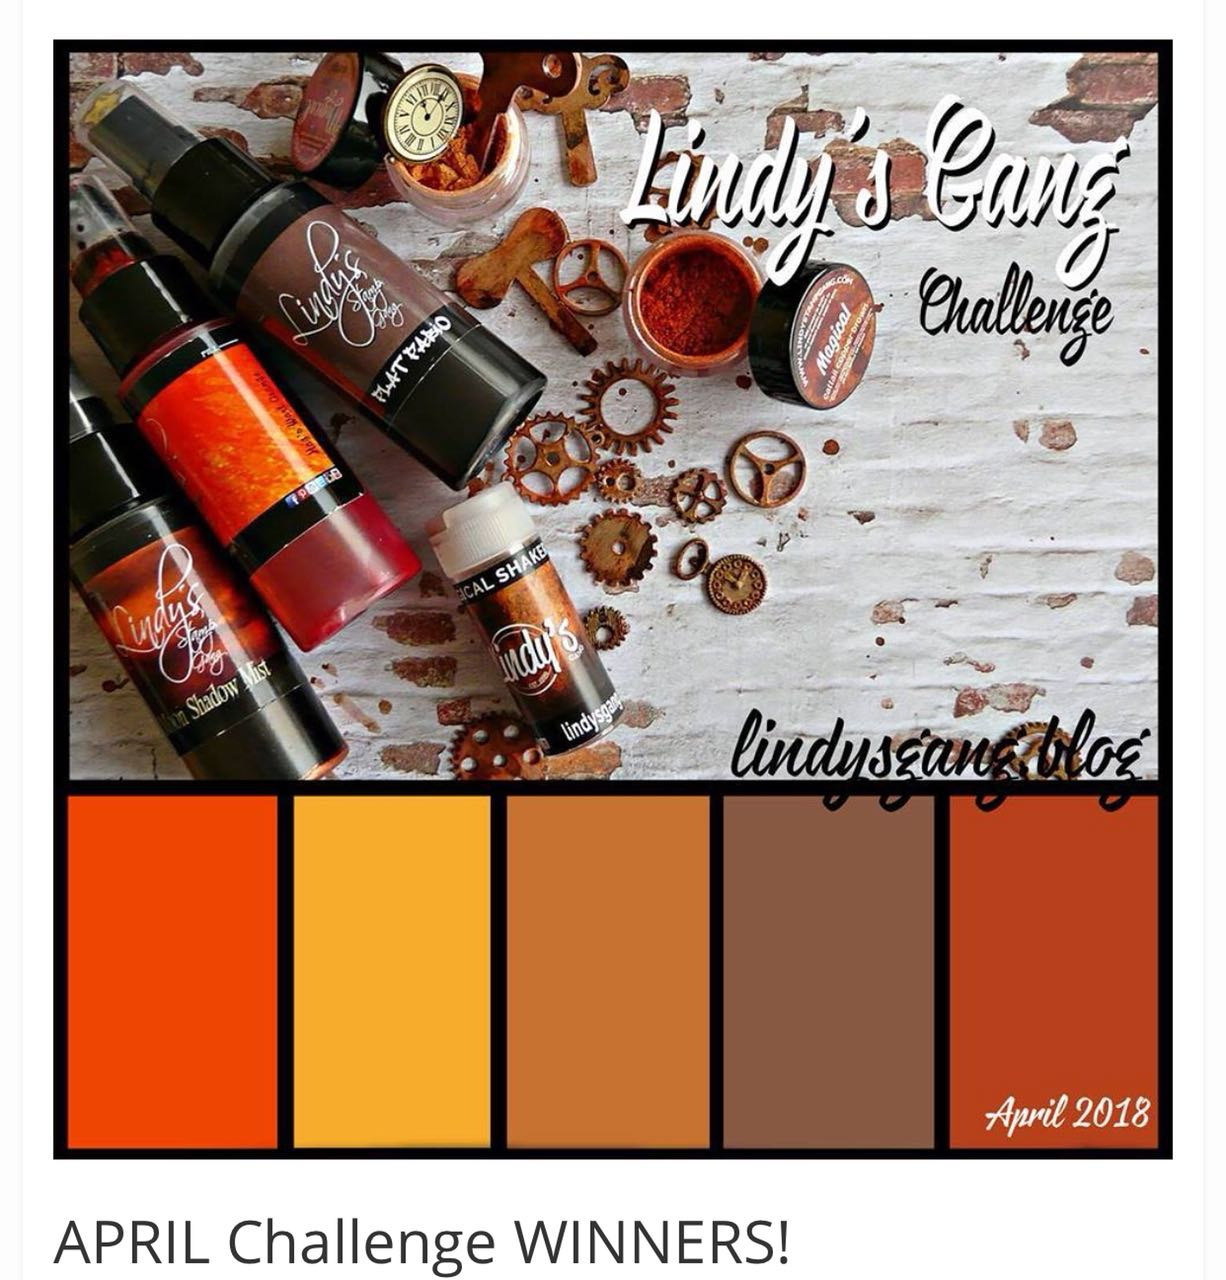 Lindysgang April Challenge Winner